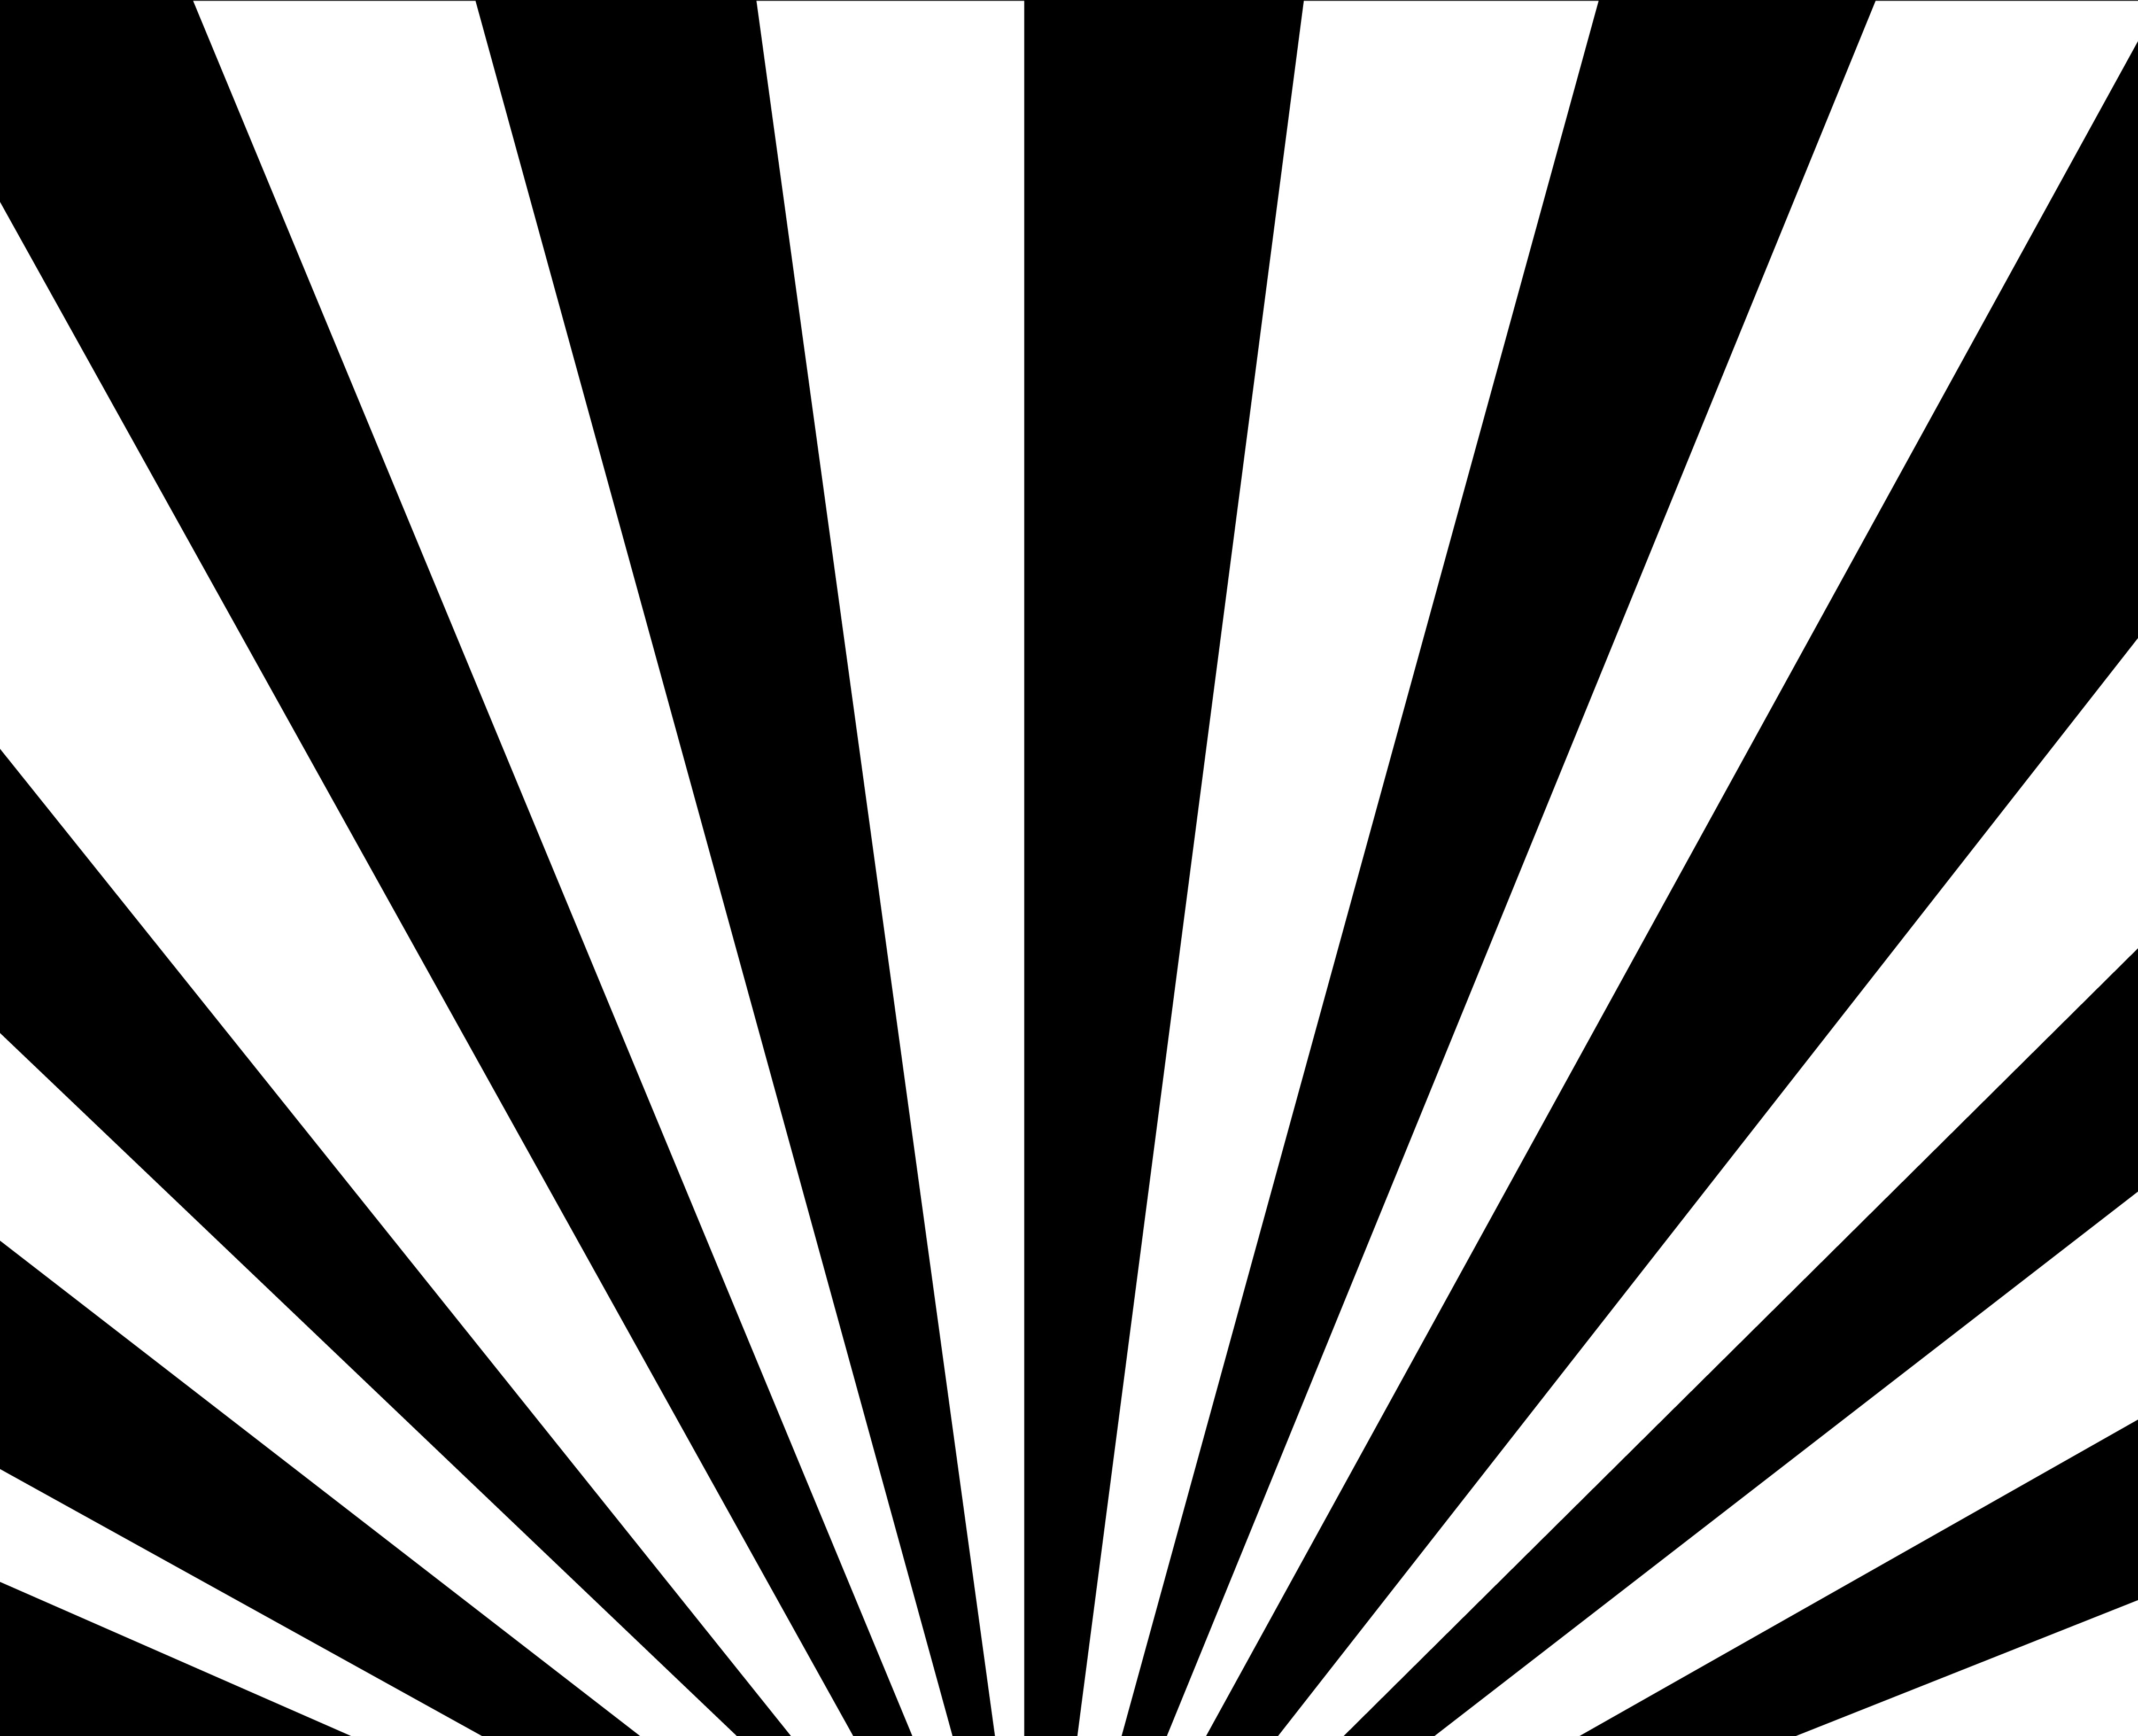 Graphic Designs Backgrounds Black And White